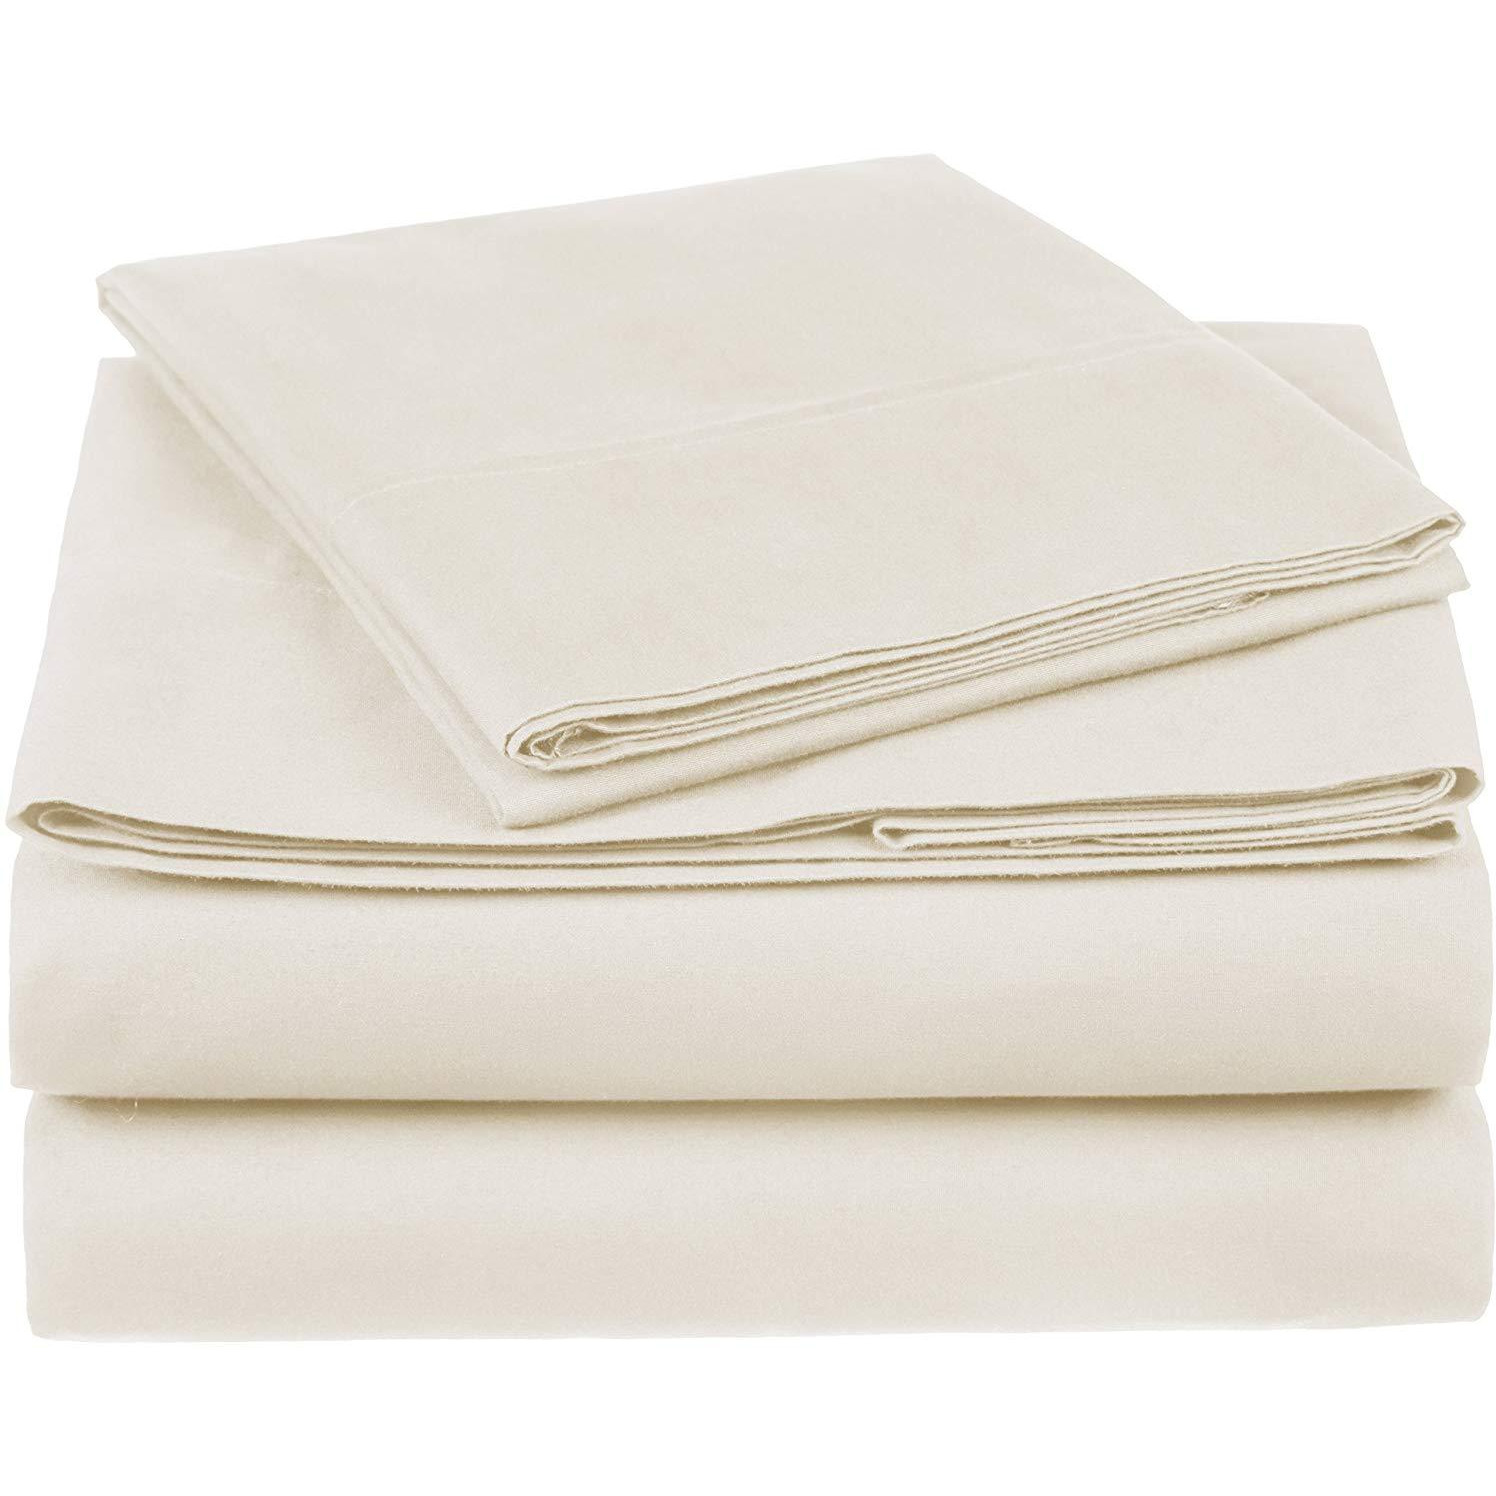 100% Cotton Sheet Set - 400 Thread Count (Piece:6 PIECE, Size:QUEEN, Color:TAUPE)